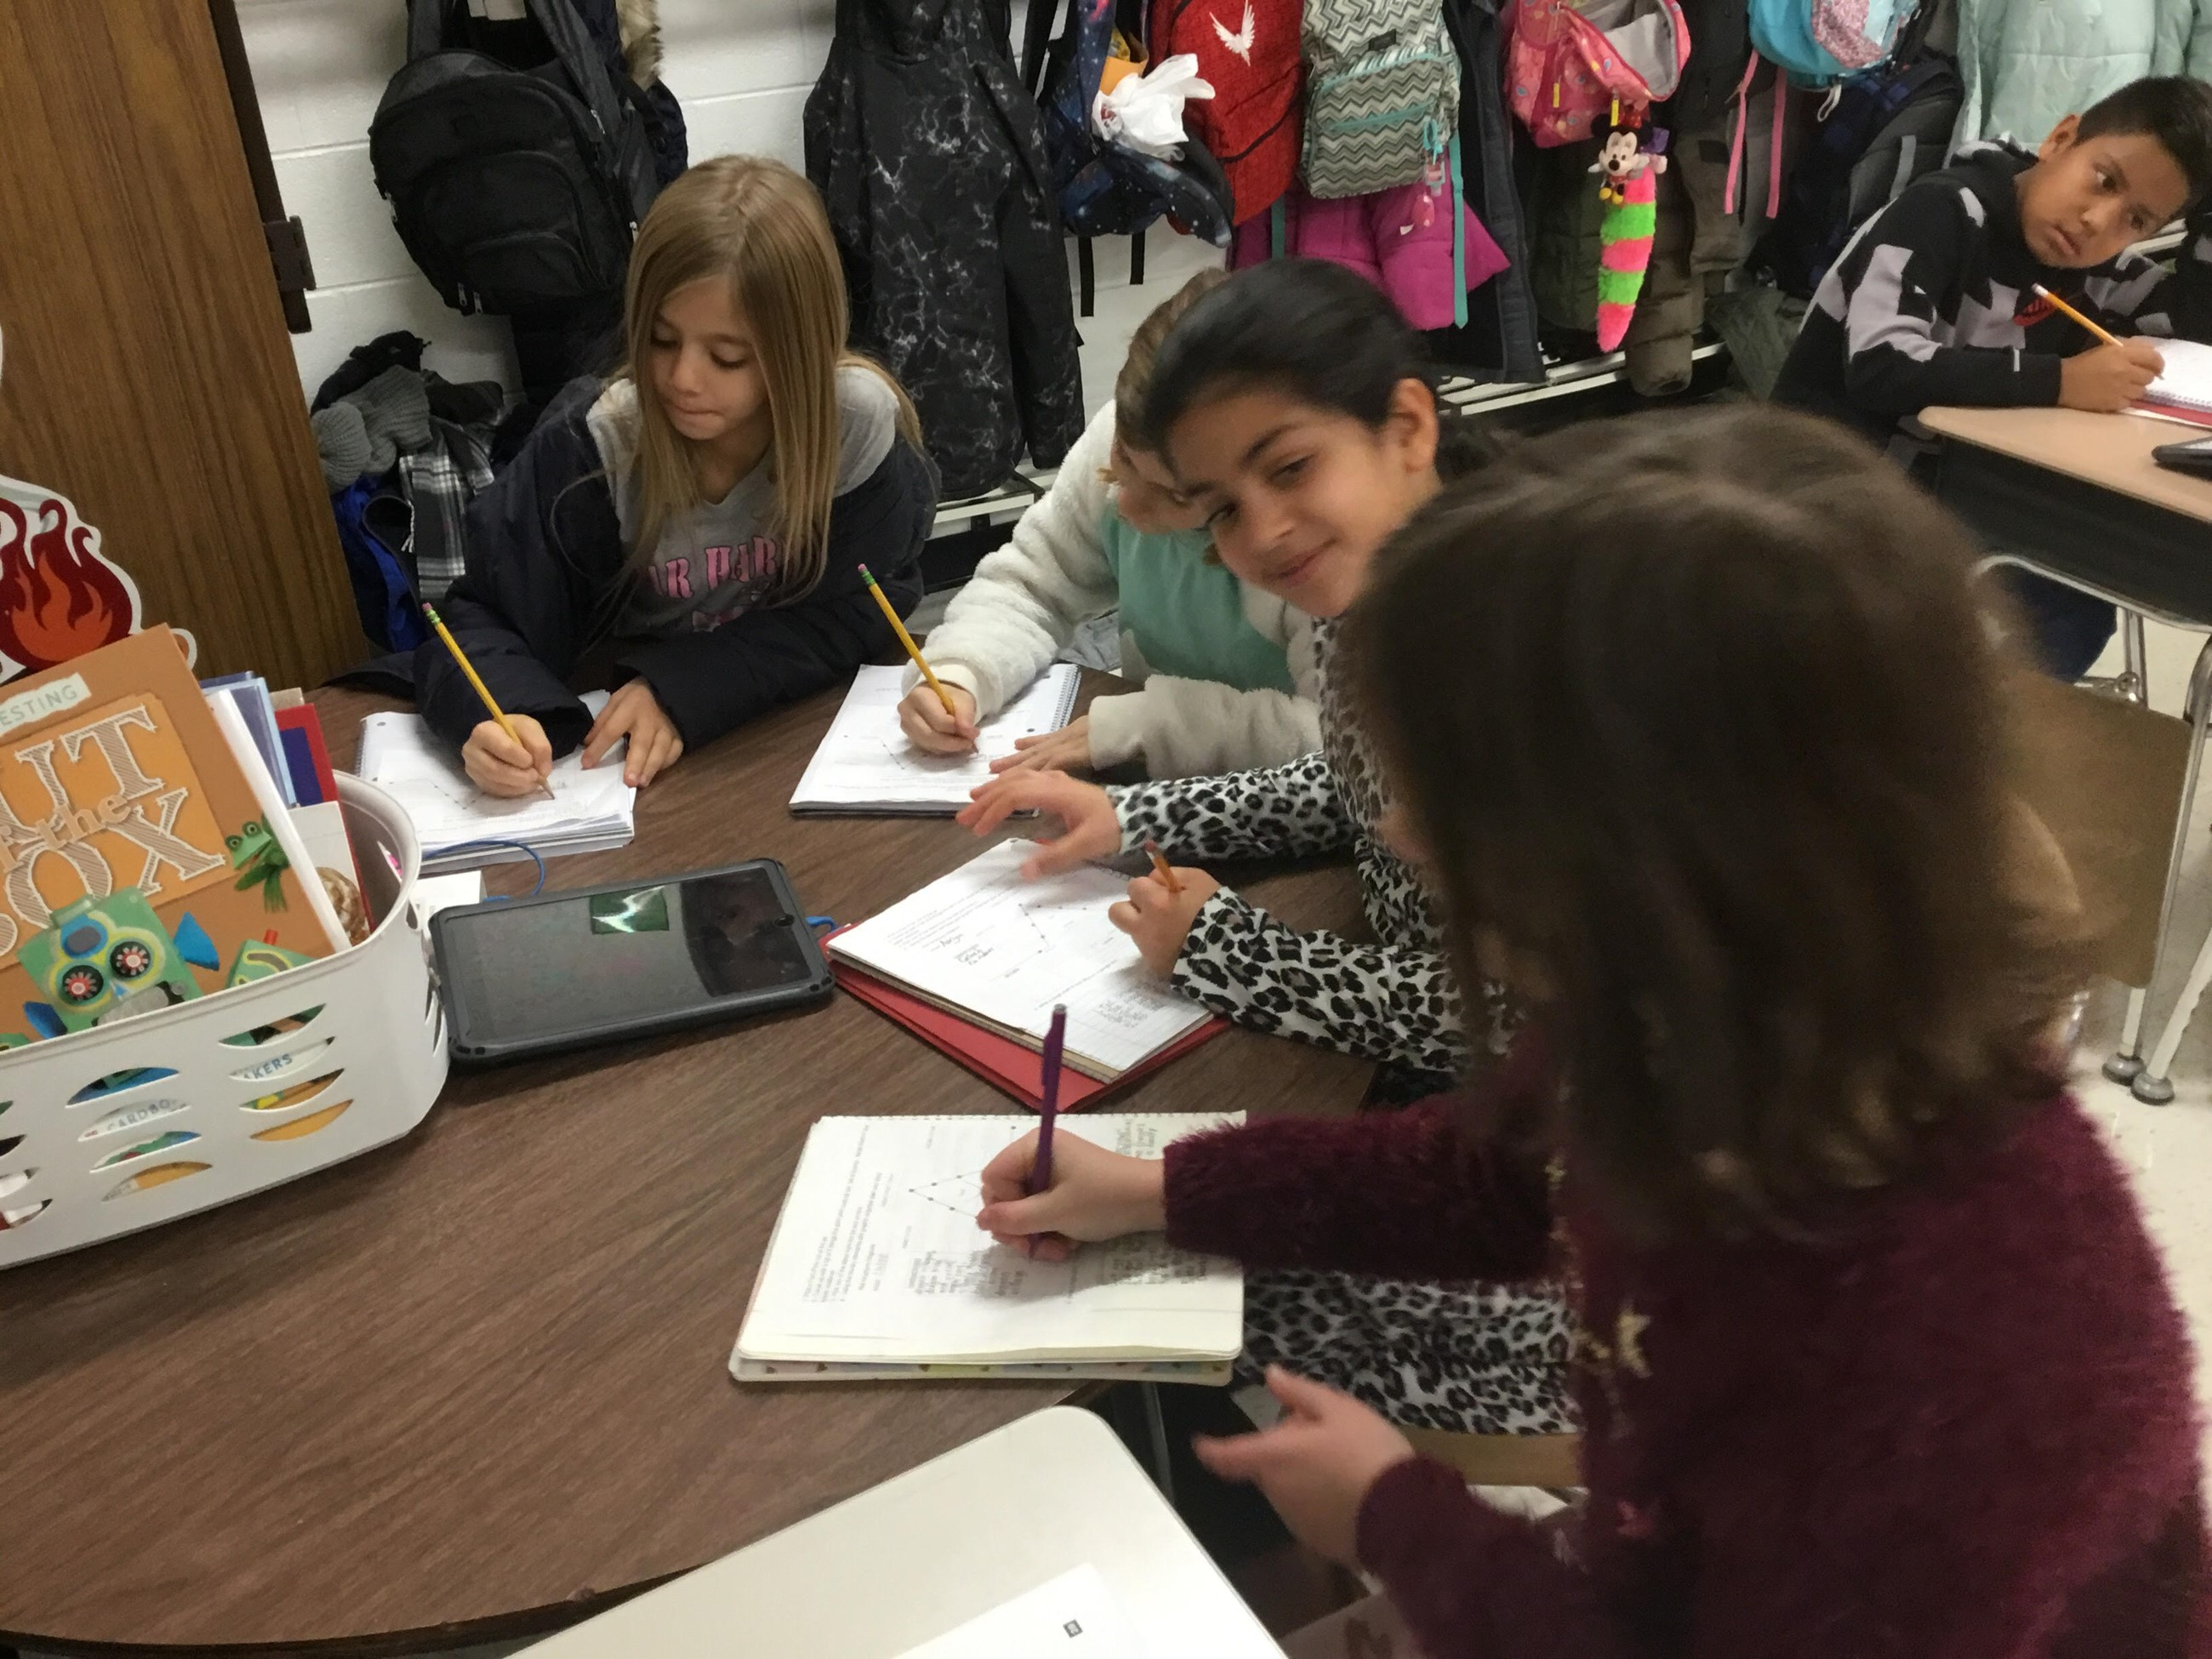 Mrs. Brusso's 4th Grade Class writing in their notebooks. A group of girls are sitting at a table together writing.